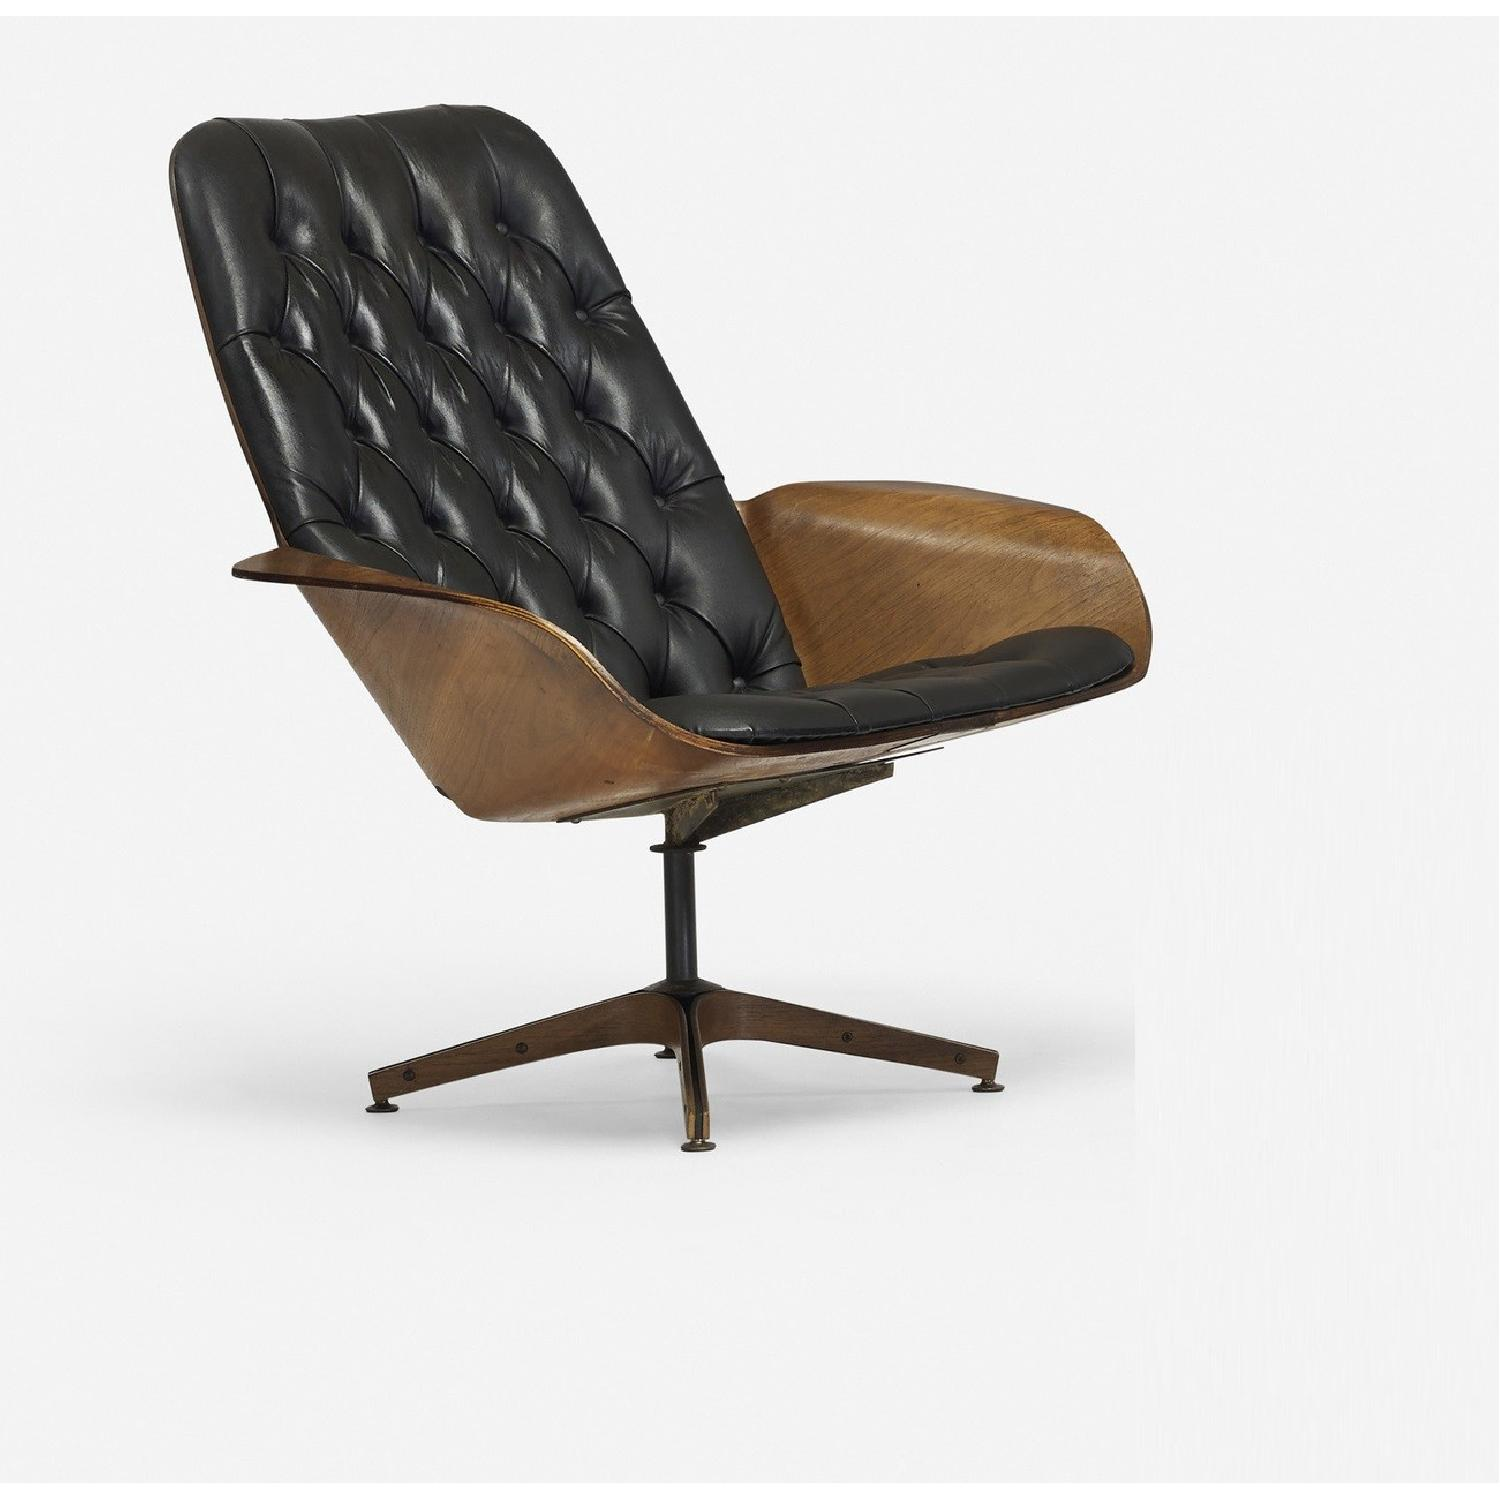 Plycraft George Mulhauser Lounge Chair